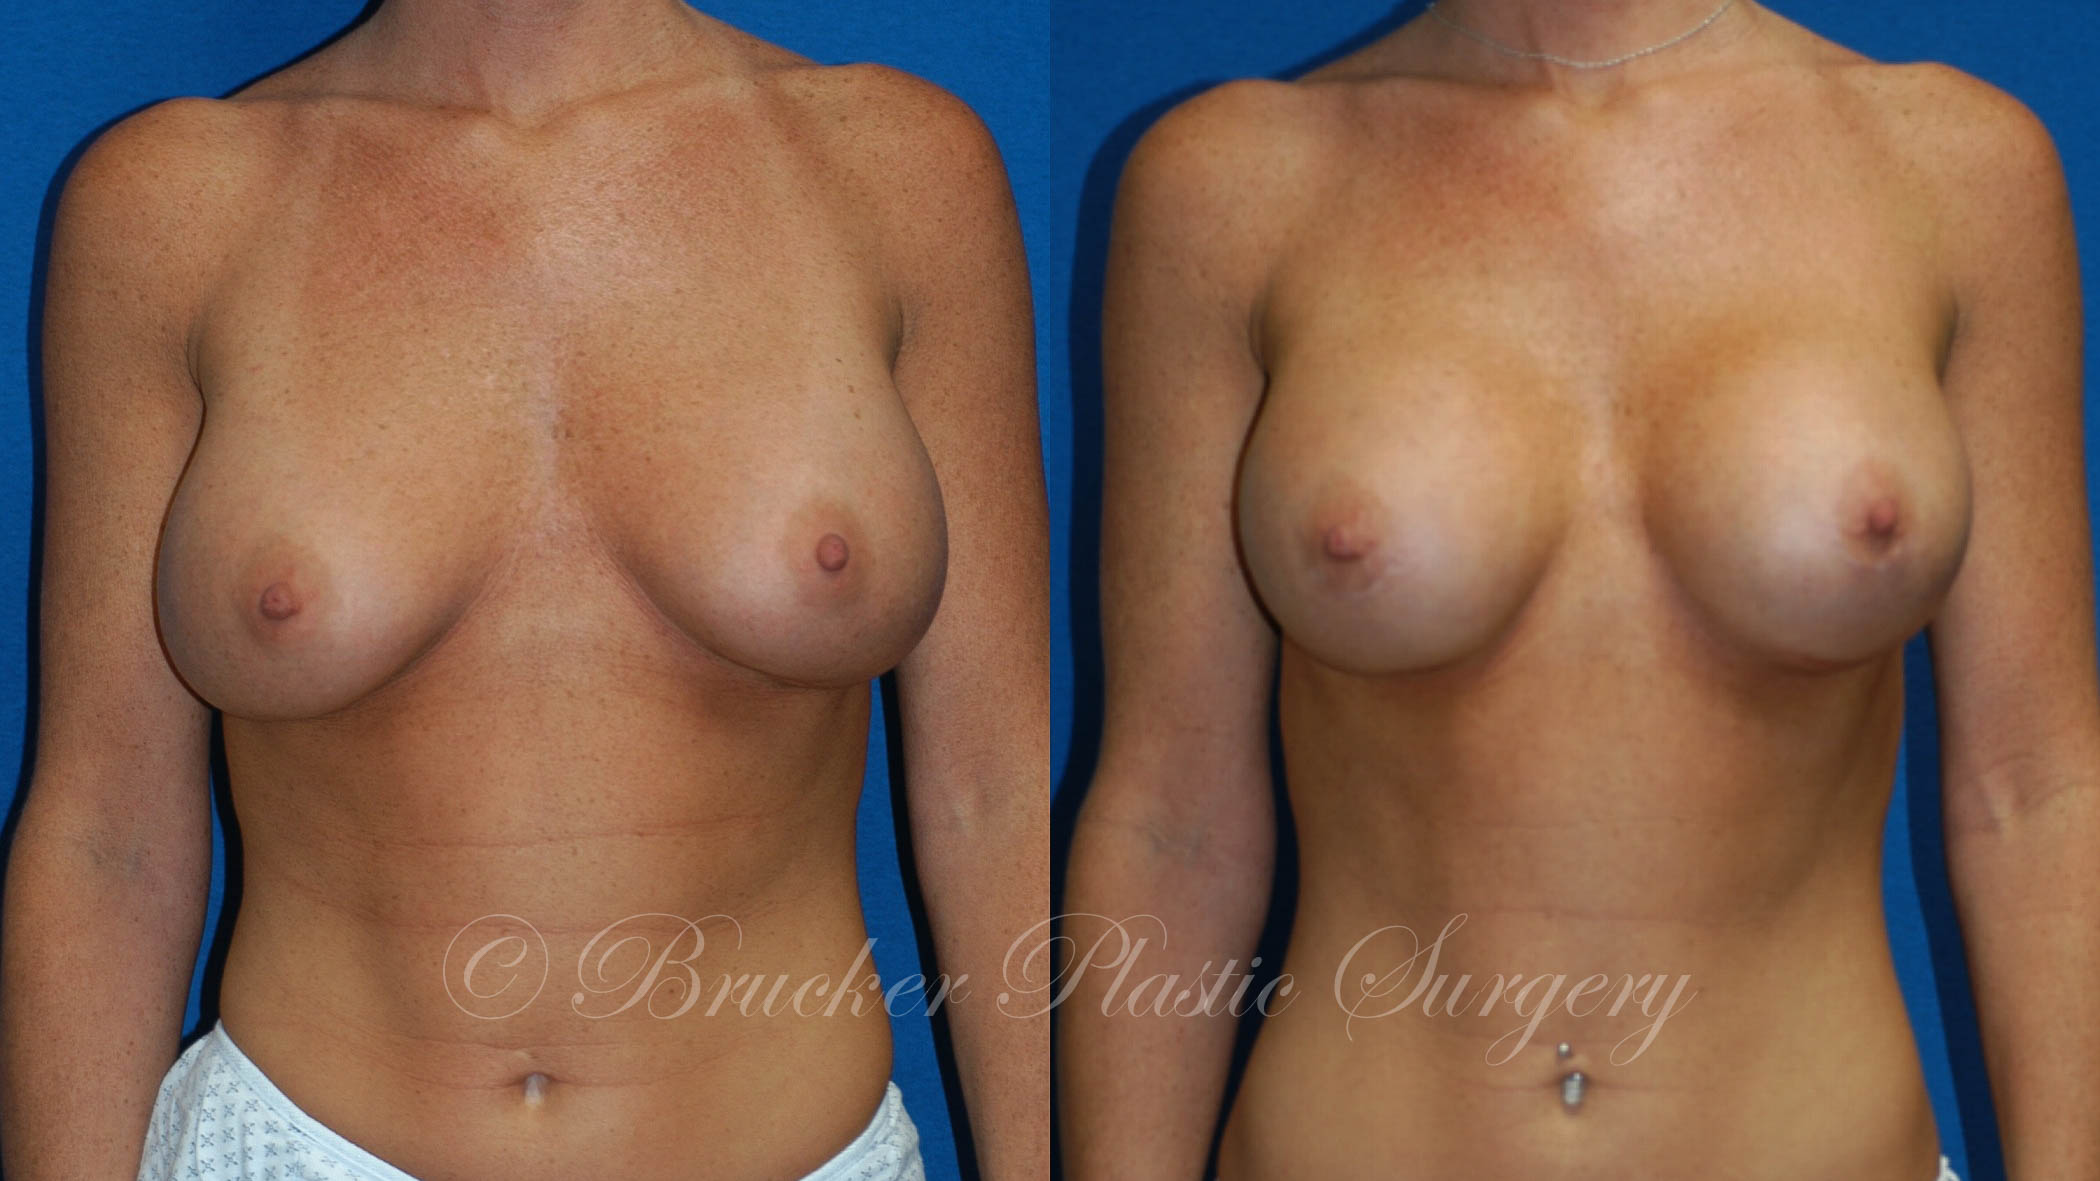 Patient 2a Aesthetic Breast Reconstruction Before and After